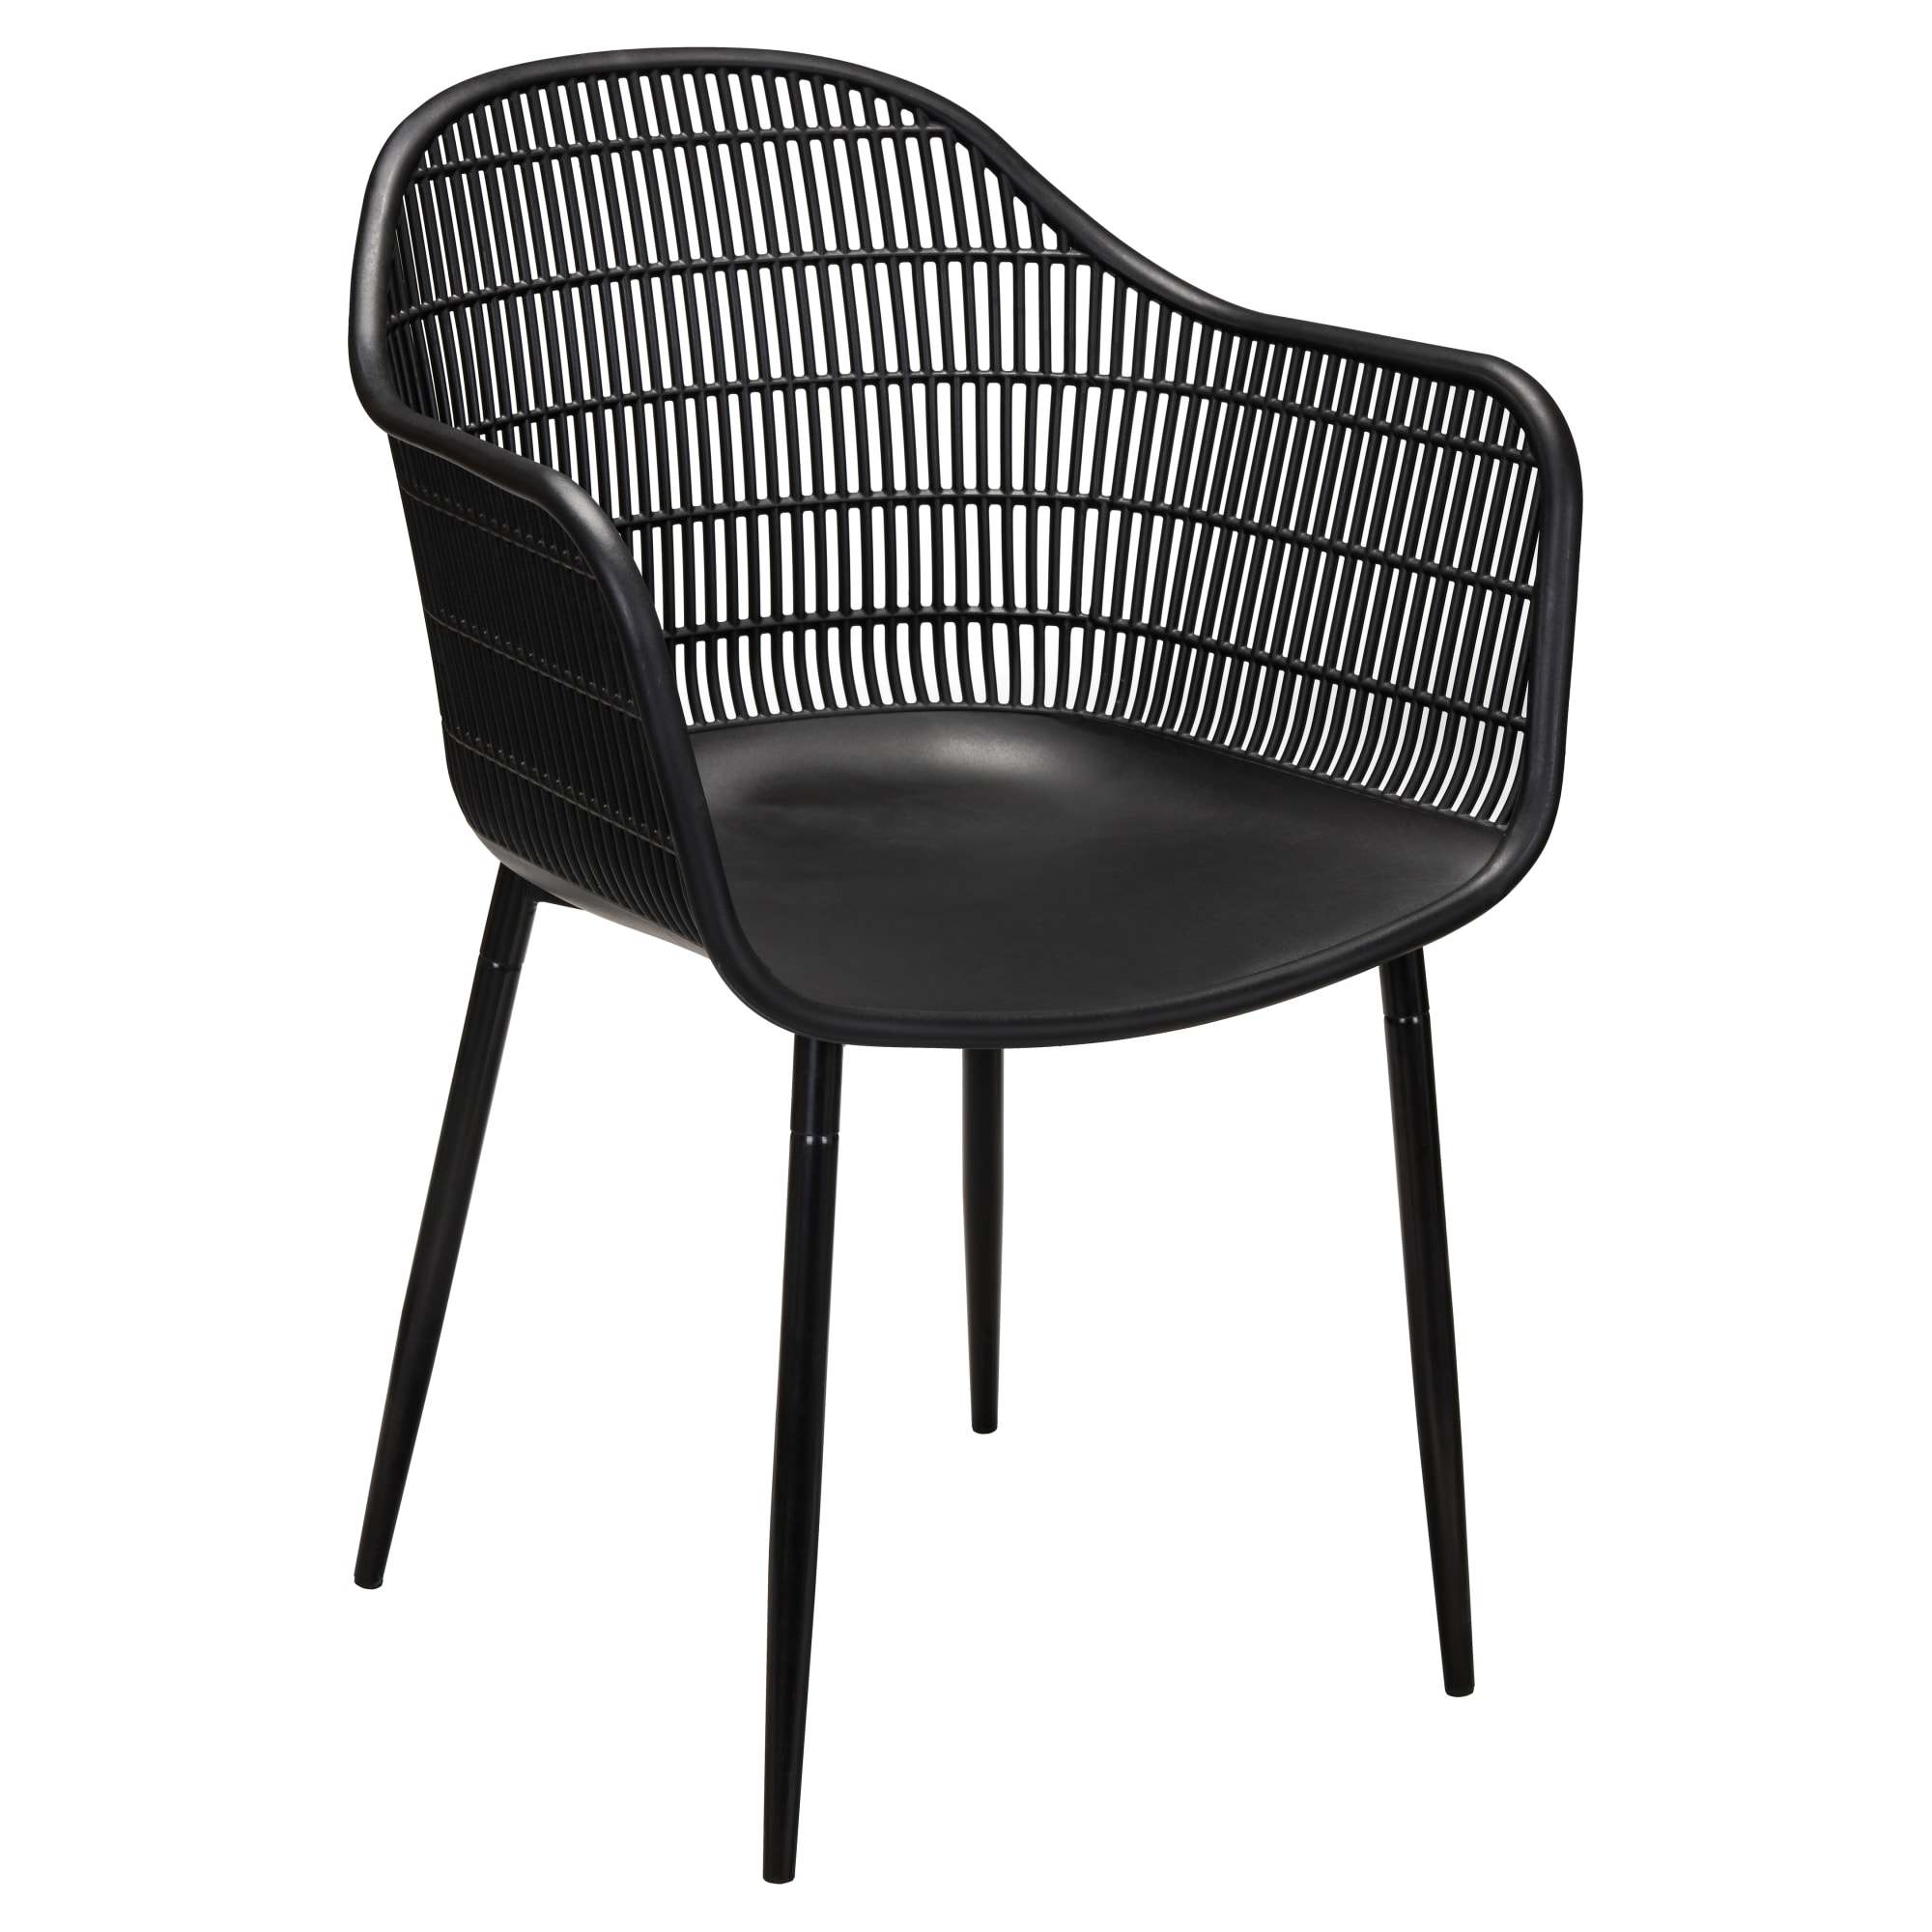 Alice Outdoor Resin Chair with Alice Outdoor Resin Chair